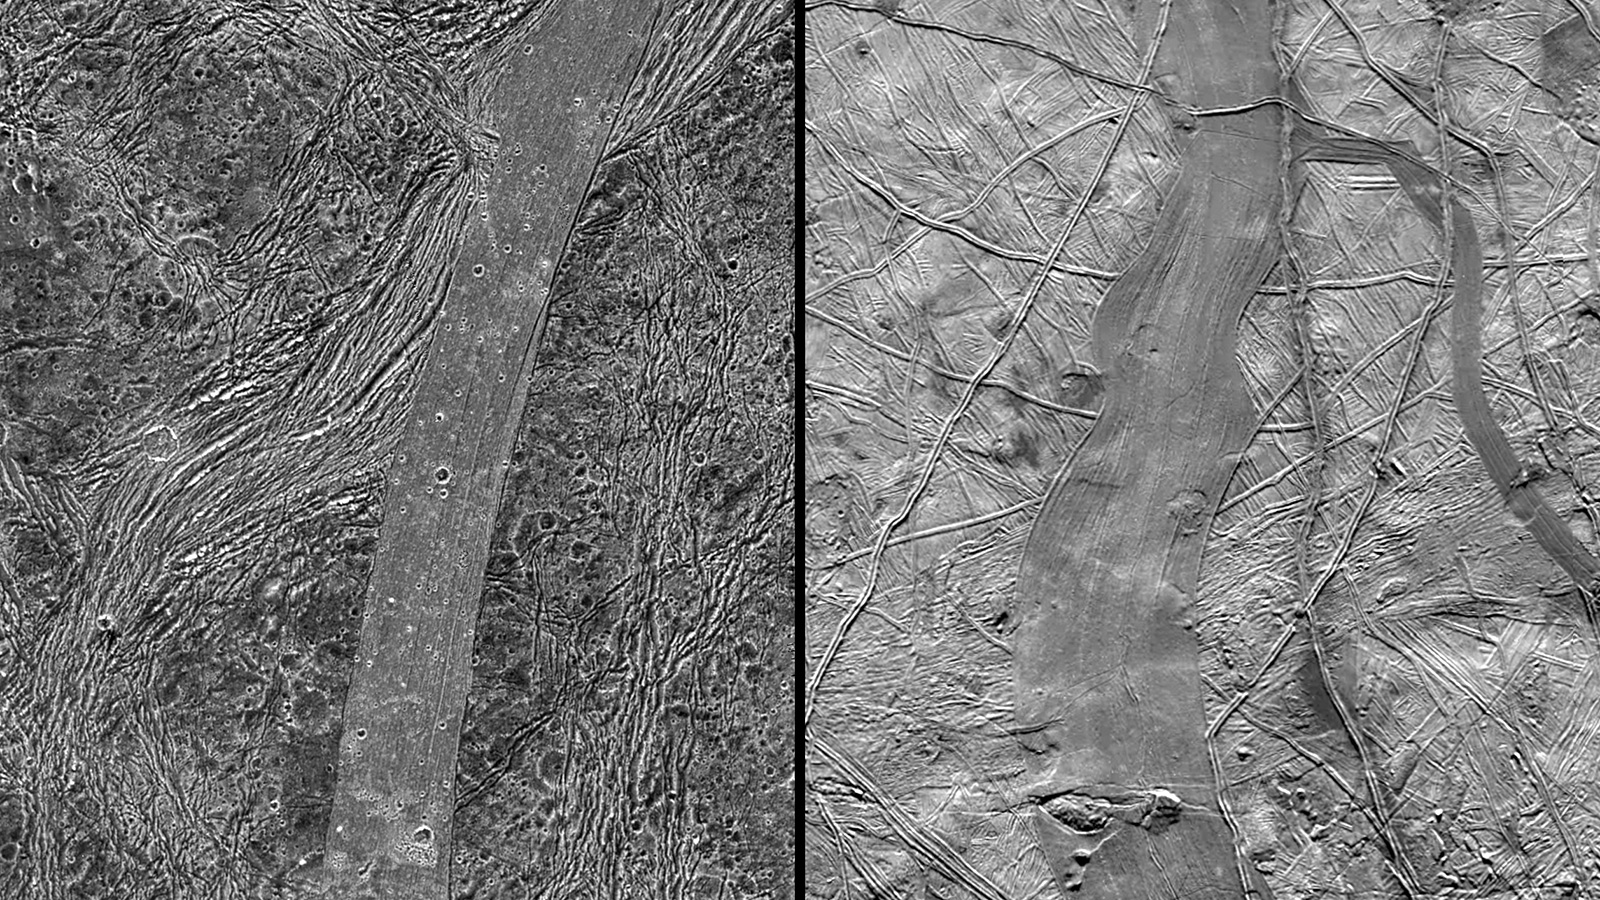 slide 1 - Icy bands and grooves on Europa